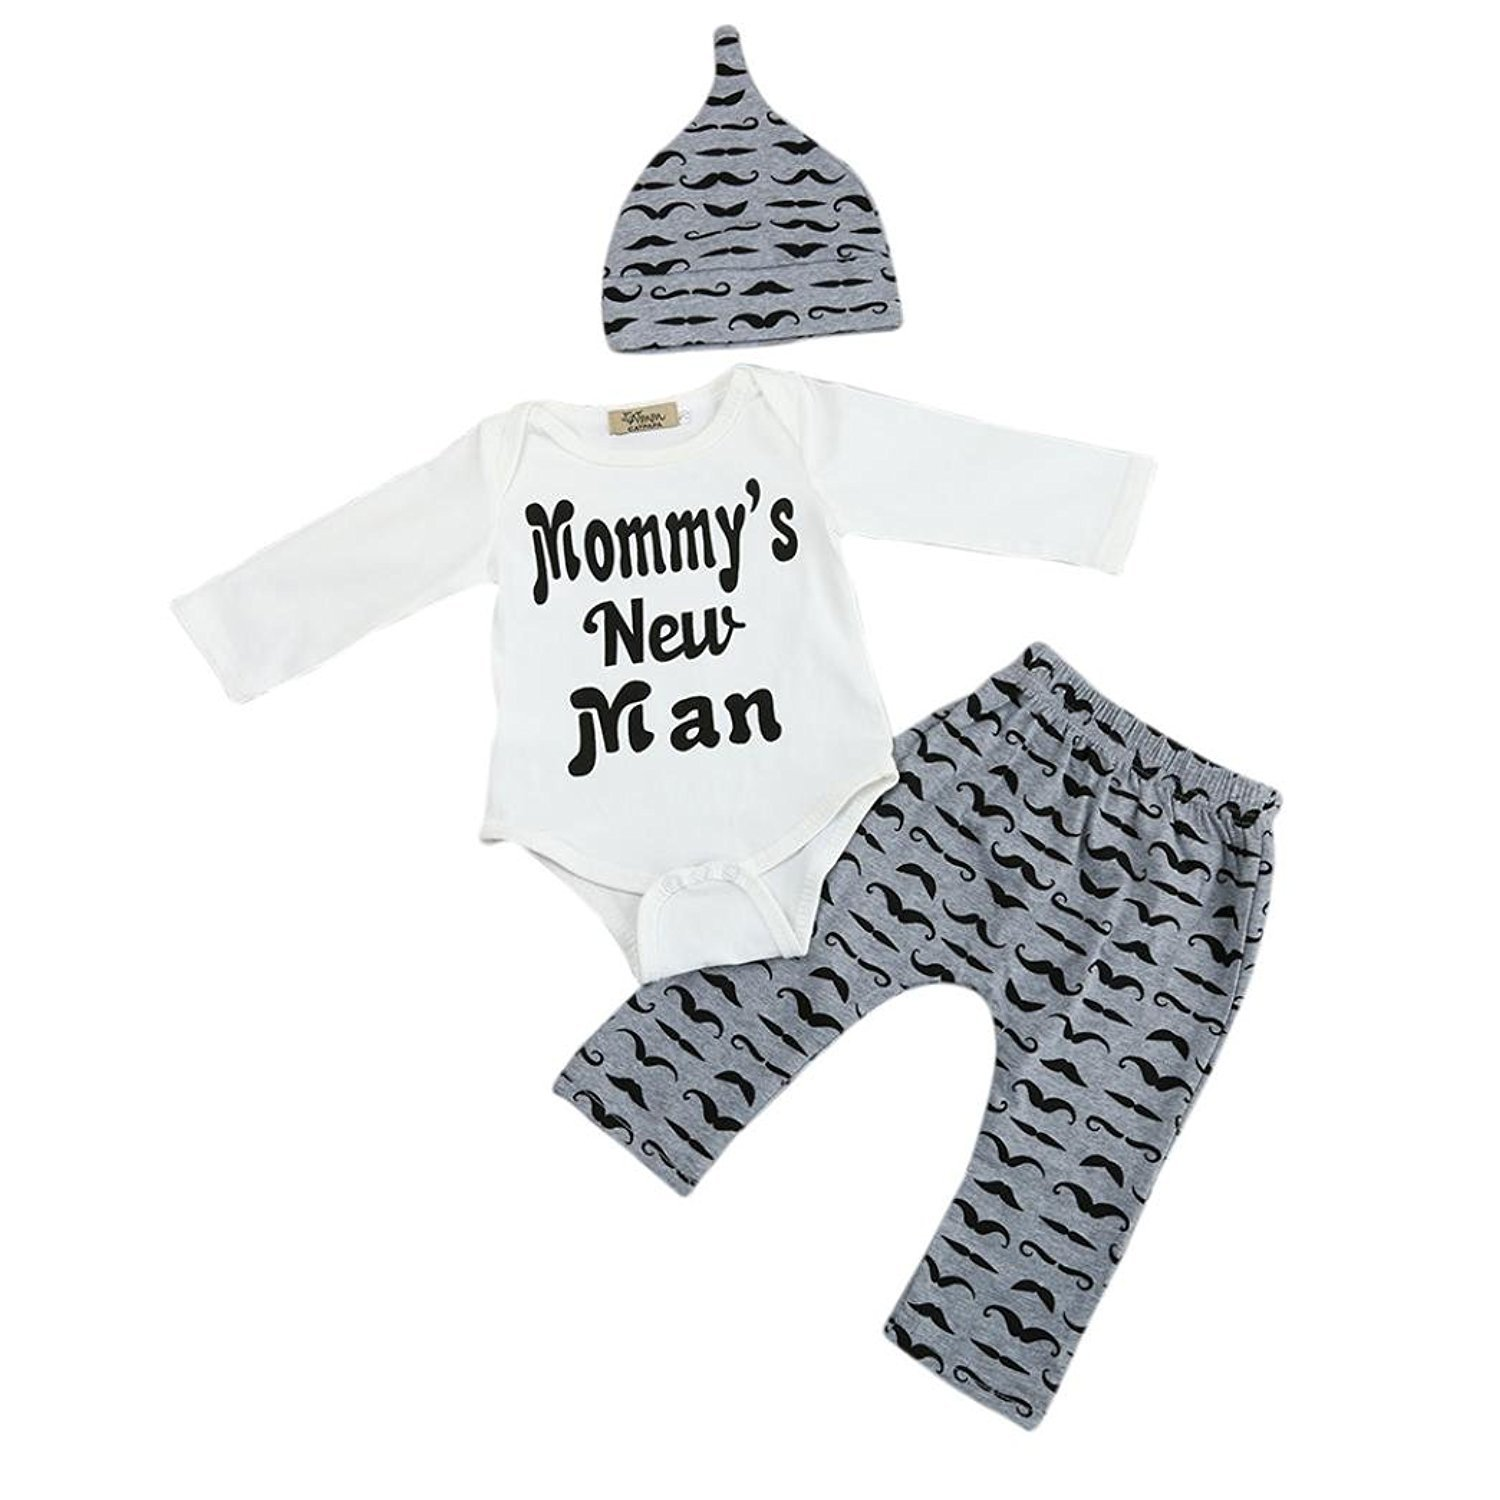 60023c7b925a Webla Newborn Baby Boy 3Pcs Outfits Clothes Letter Mommy s New Man ...